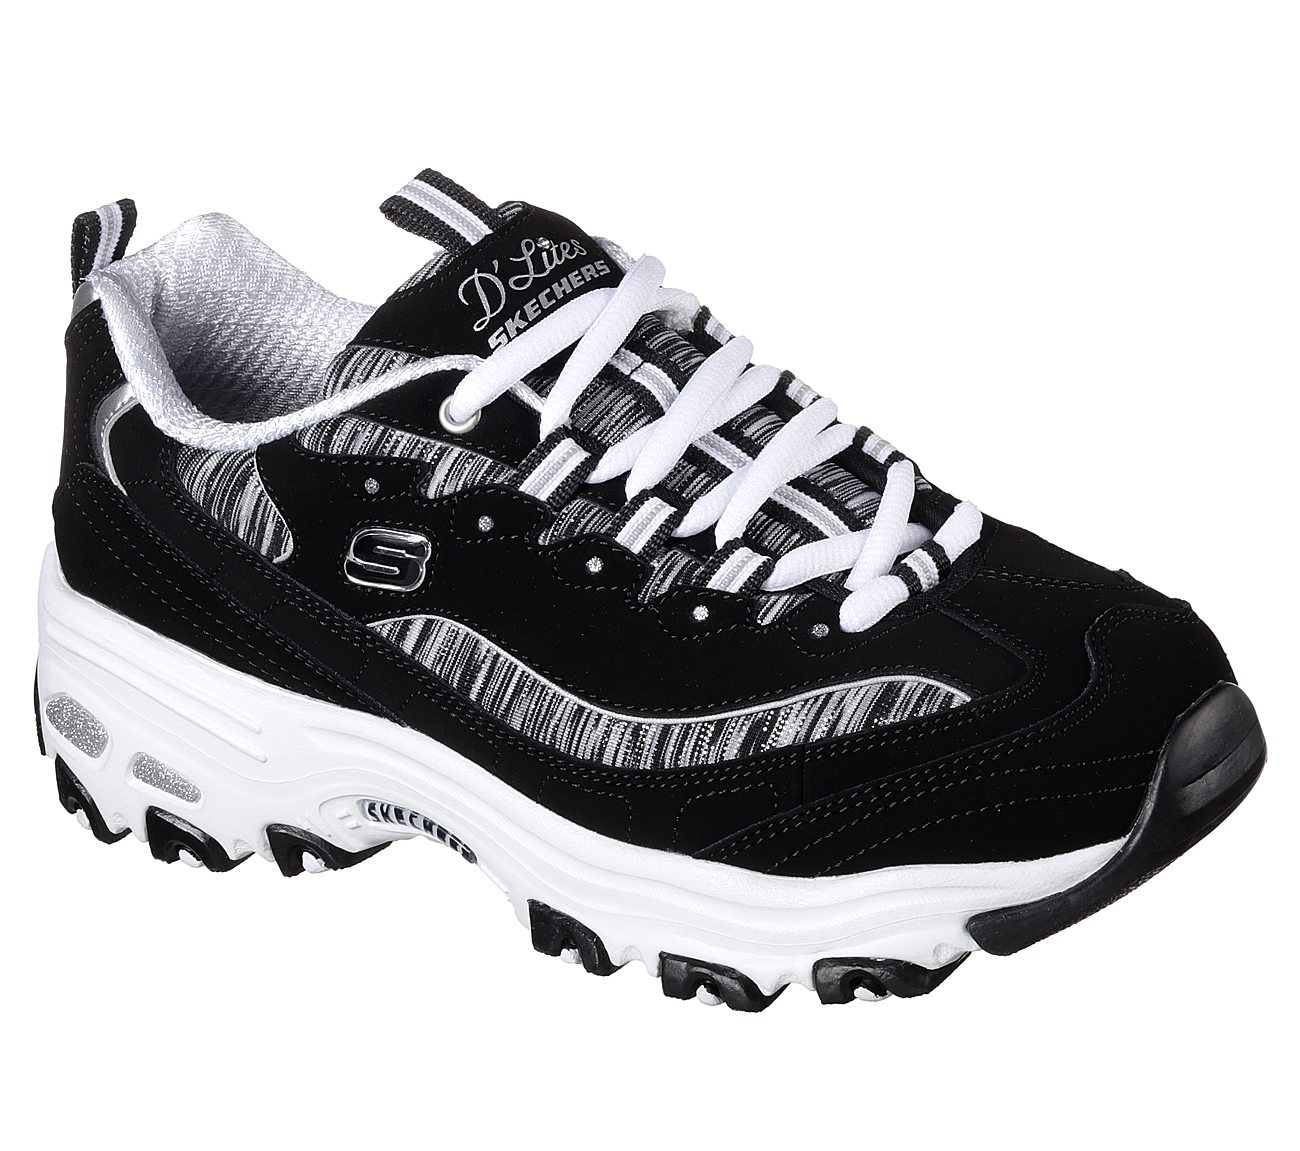 ebcc10970e88 Buy SKECHERS D Lites - Interlude Skechers D Lites Shoes only £64.00